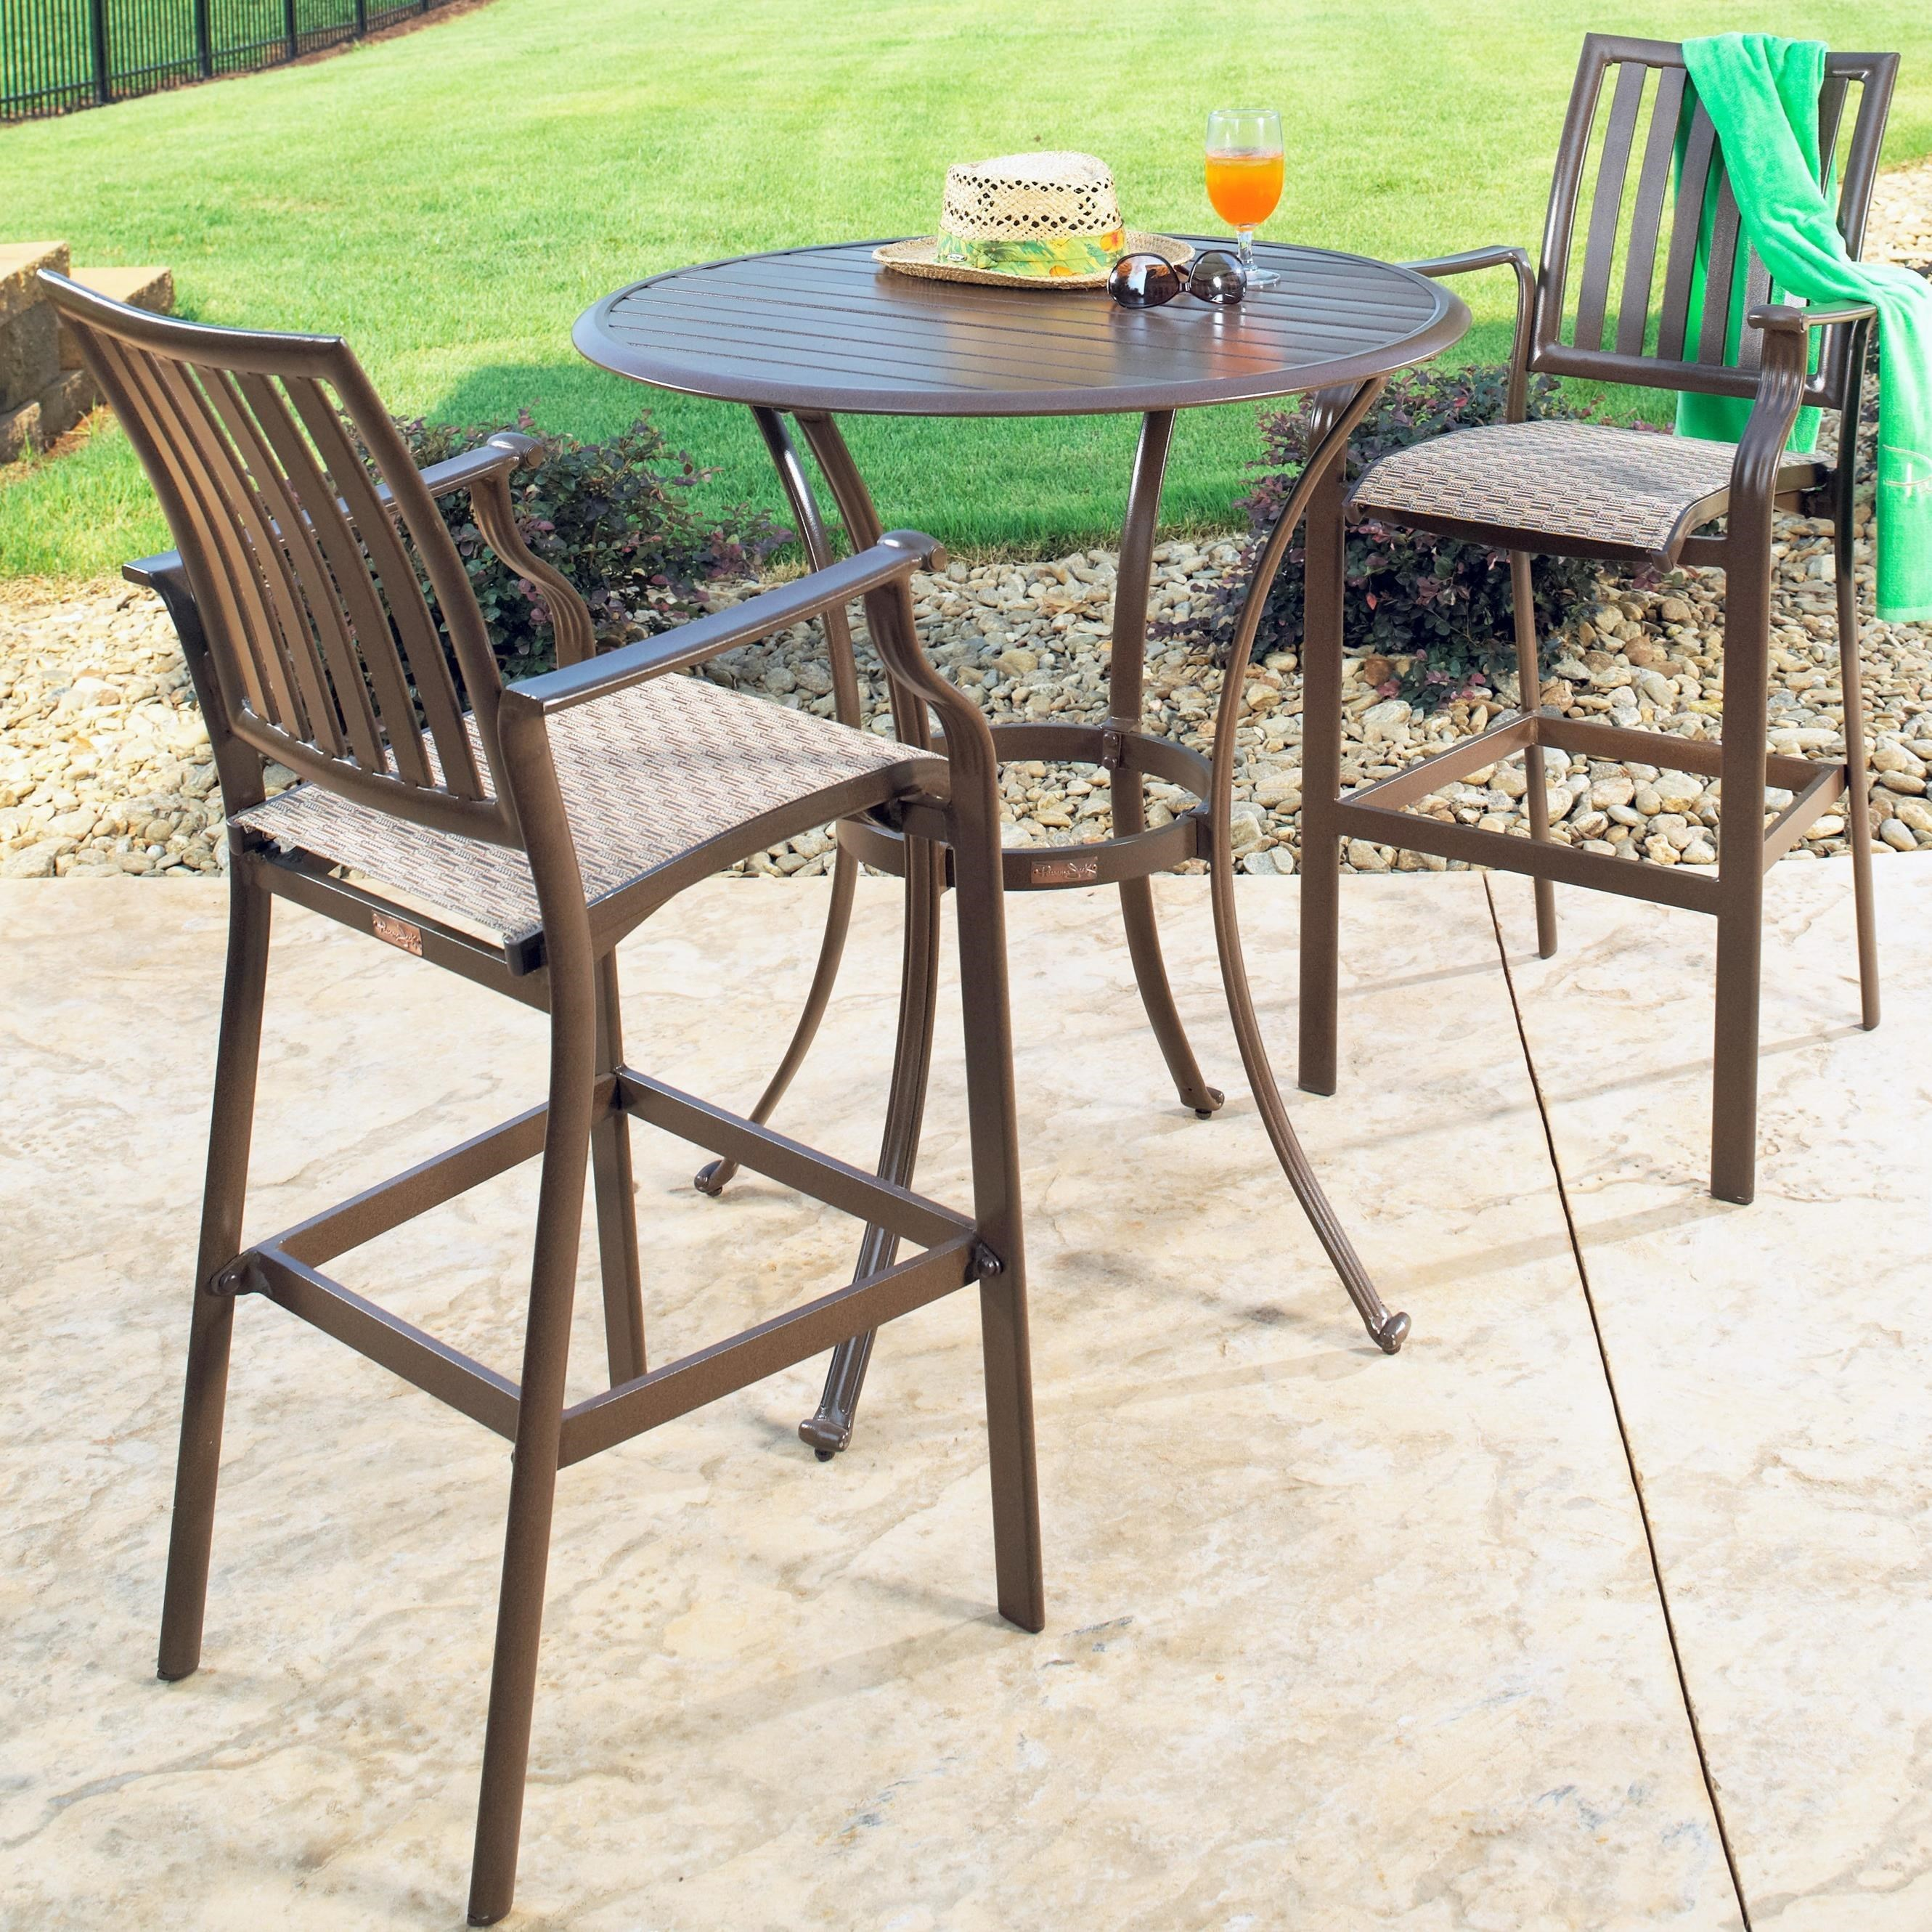 Panama Jack Island Breeze 3 Piece Slatted Pub Table Set By Pelican Reef